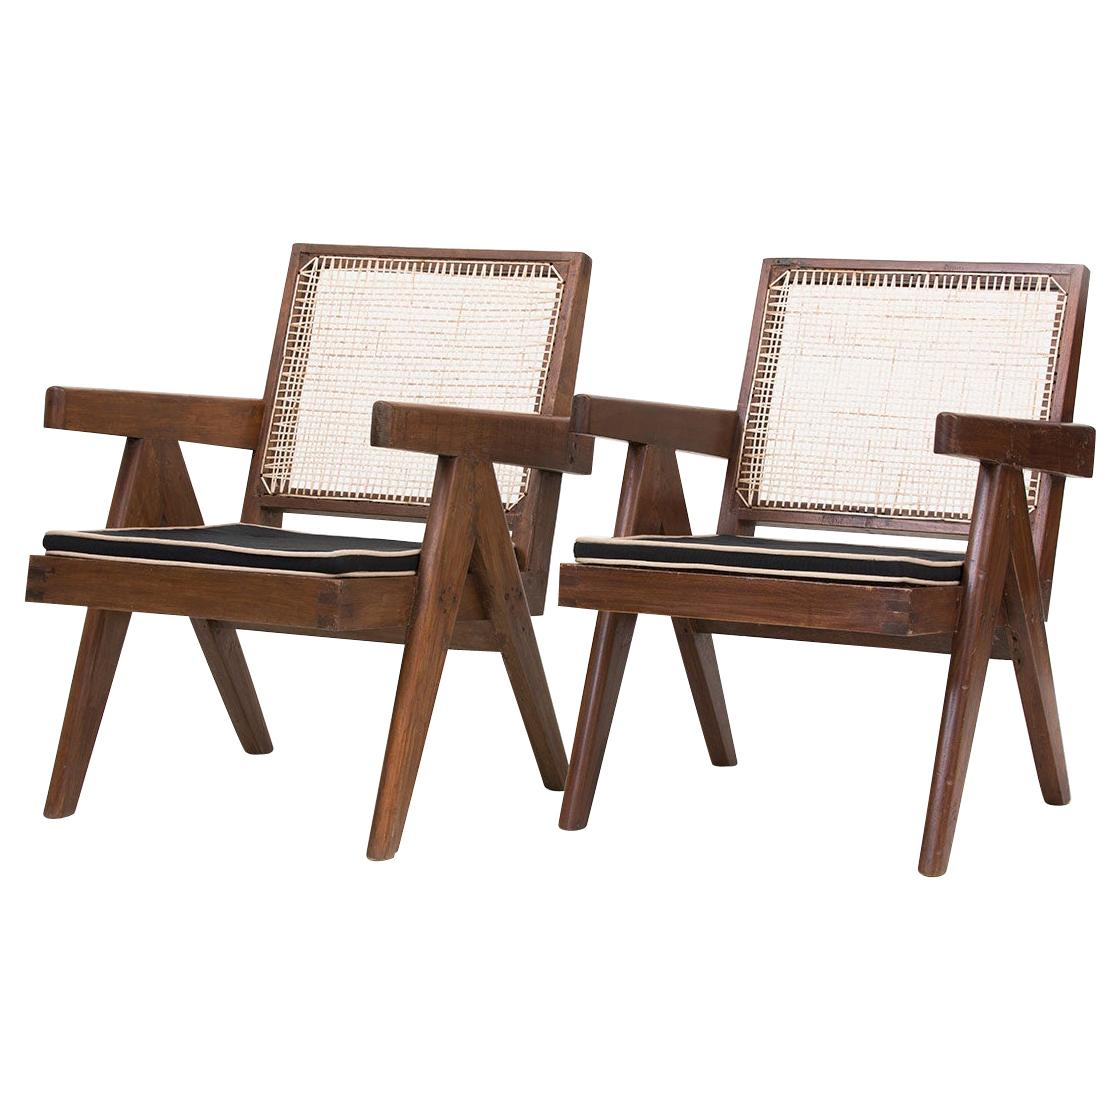 Pierre Jeanneret Low Lounge Chairs